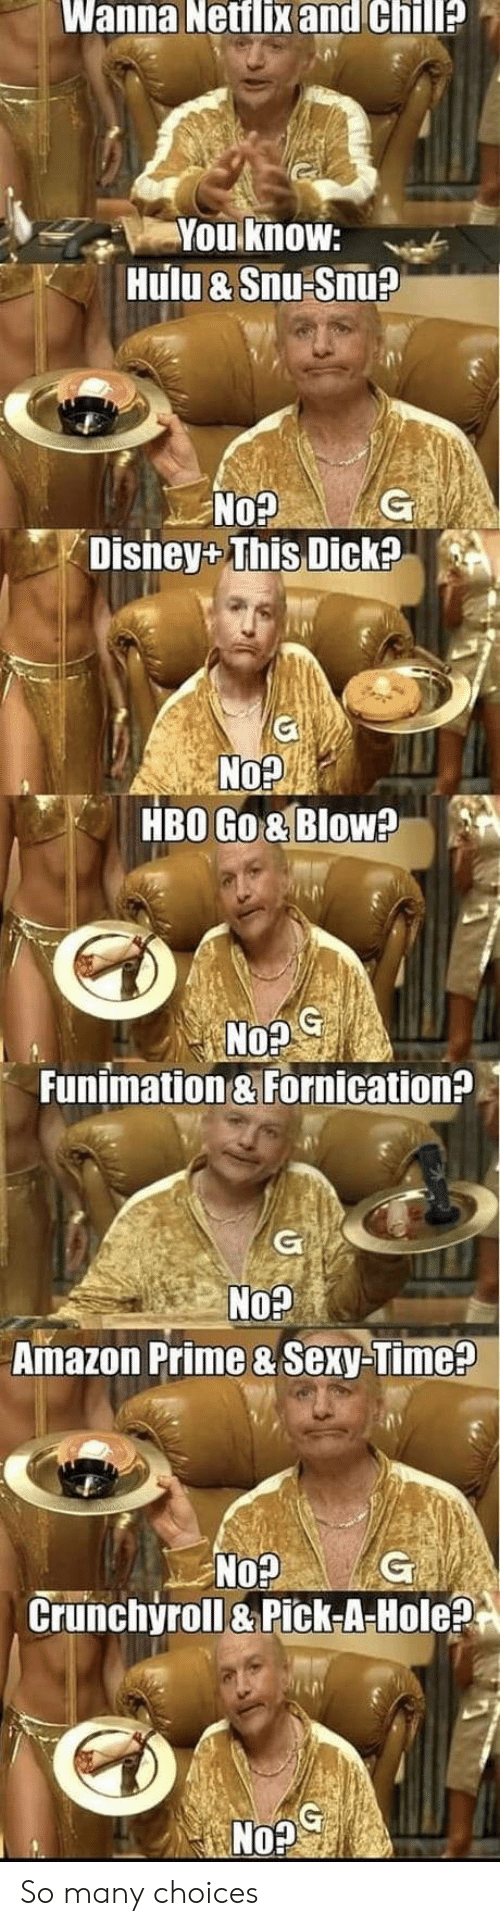 hole: Wanna Netflix and Chill?  You know:  Hulu & Snu Snu?  G  No?  Disney+ This Dick?  No?  HBO Go& Blow?  G  No?  Funimation & Fornication?  G  No?  Amazon Prime & Sexy-Time?  No?  Crunchyroll&Pick-A-Hole?  G So many choices